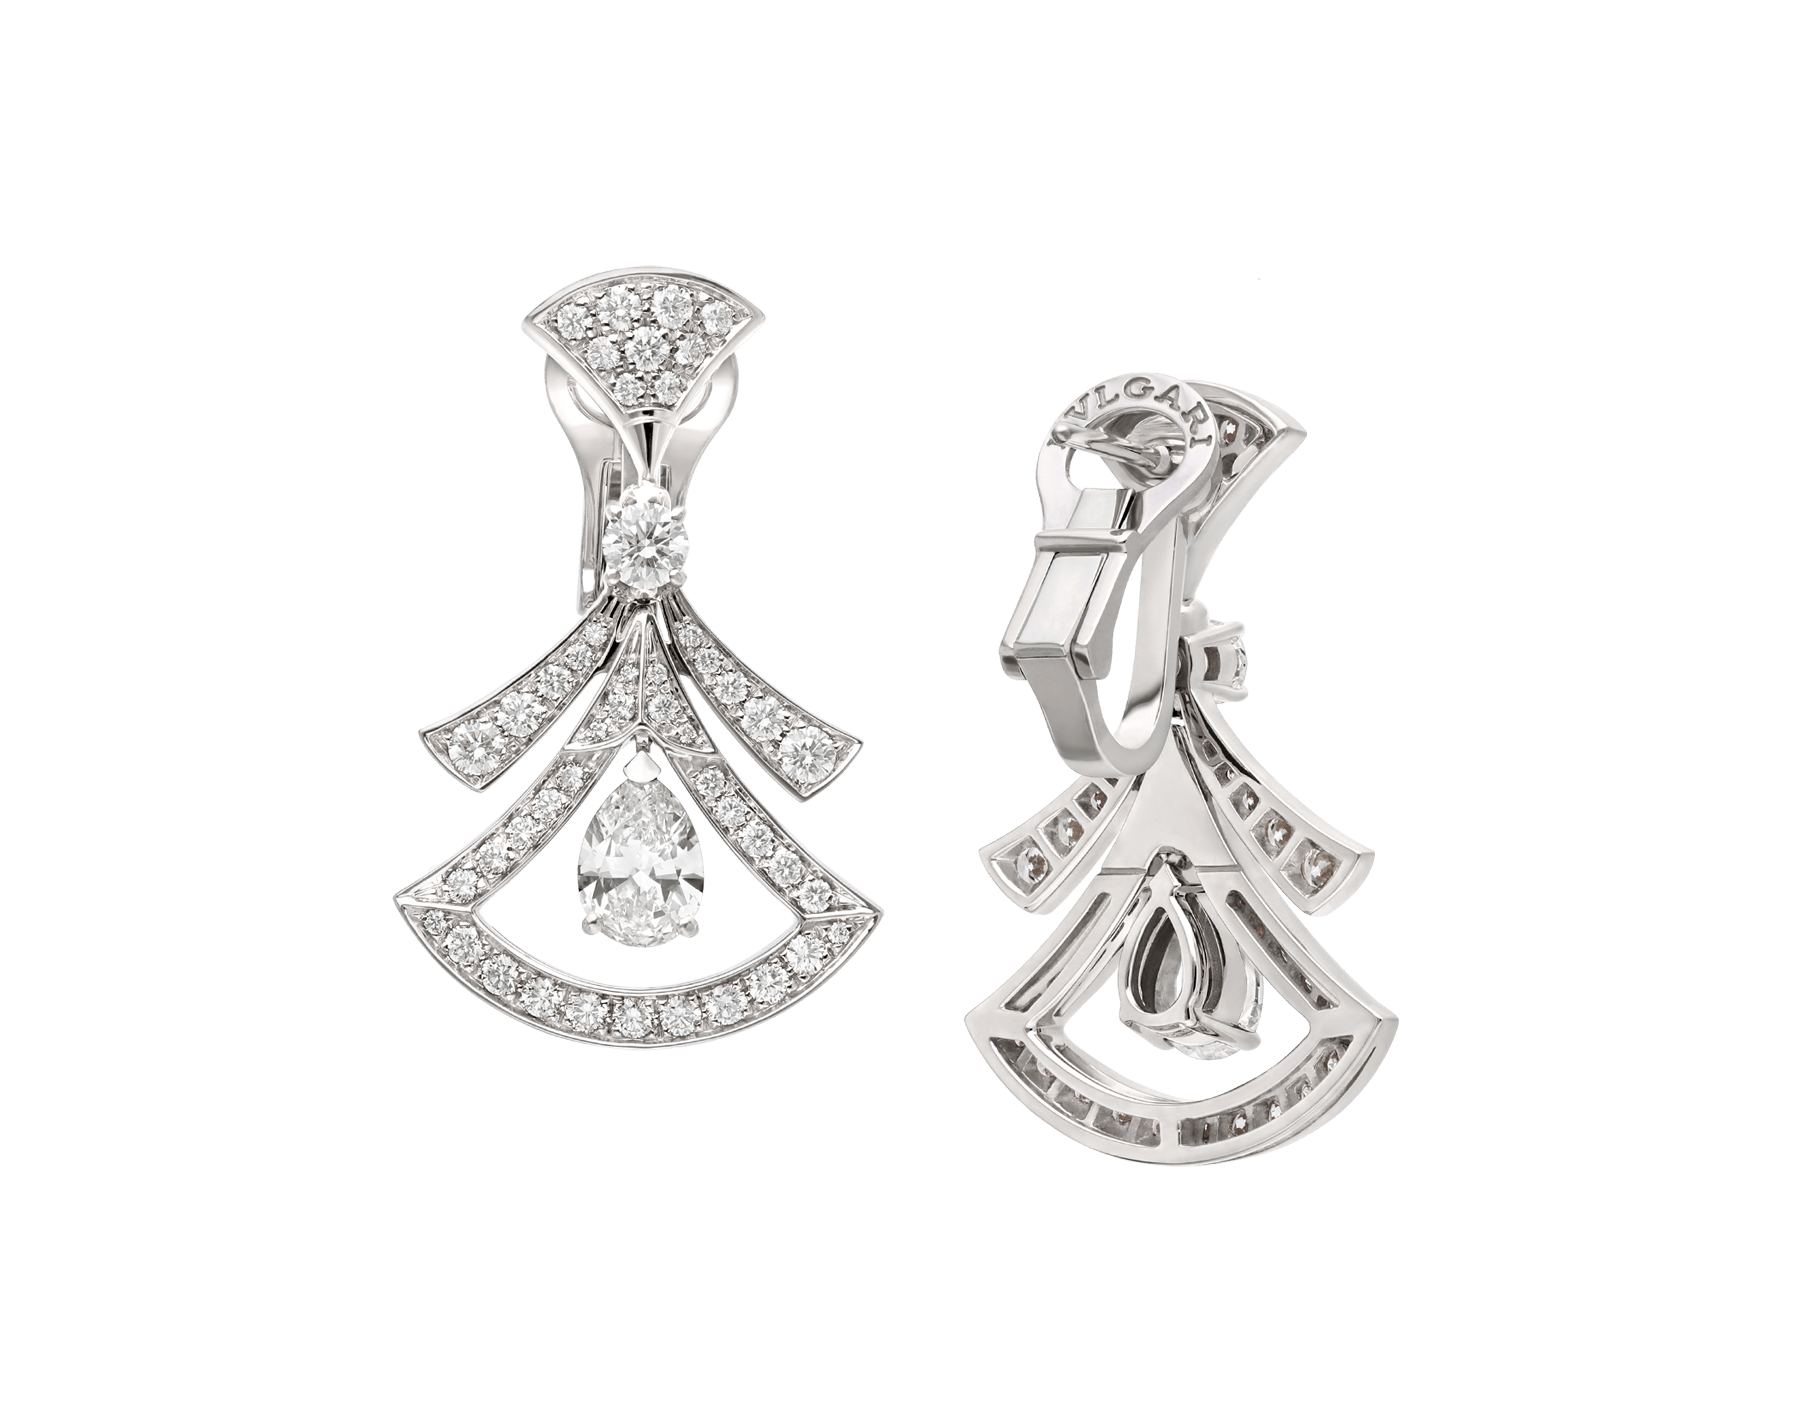 Divas' Dream 18 kt white gold openwork earrings set with two pear-shaped diamonds (1.40 ct), two round brilliant-cut diamonds (0.30 ct) and pavé diamonds (1.18 ct) 358221 image 3